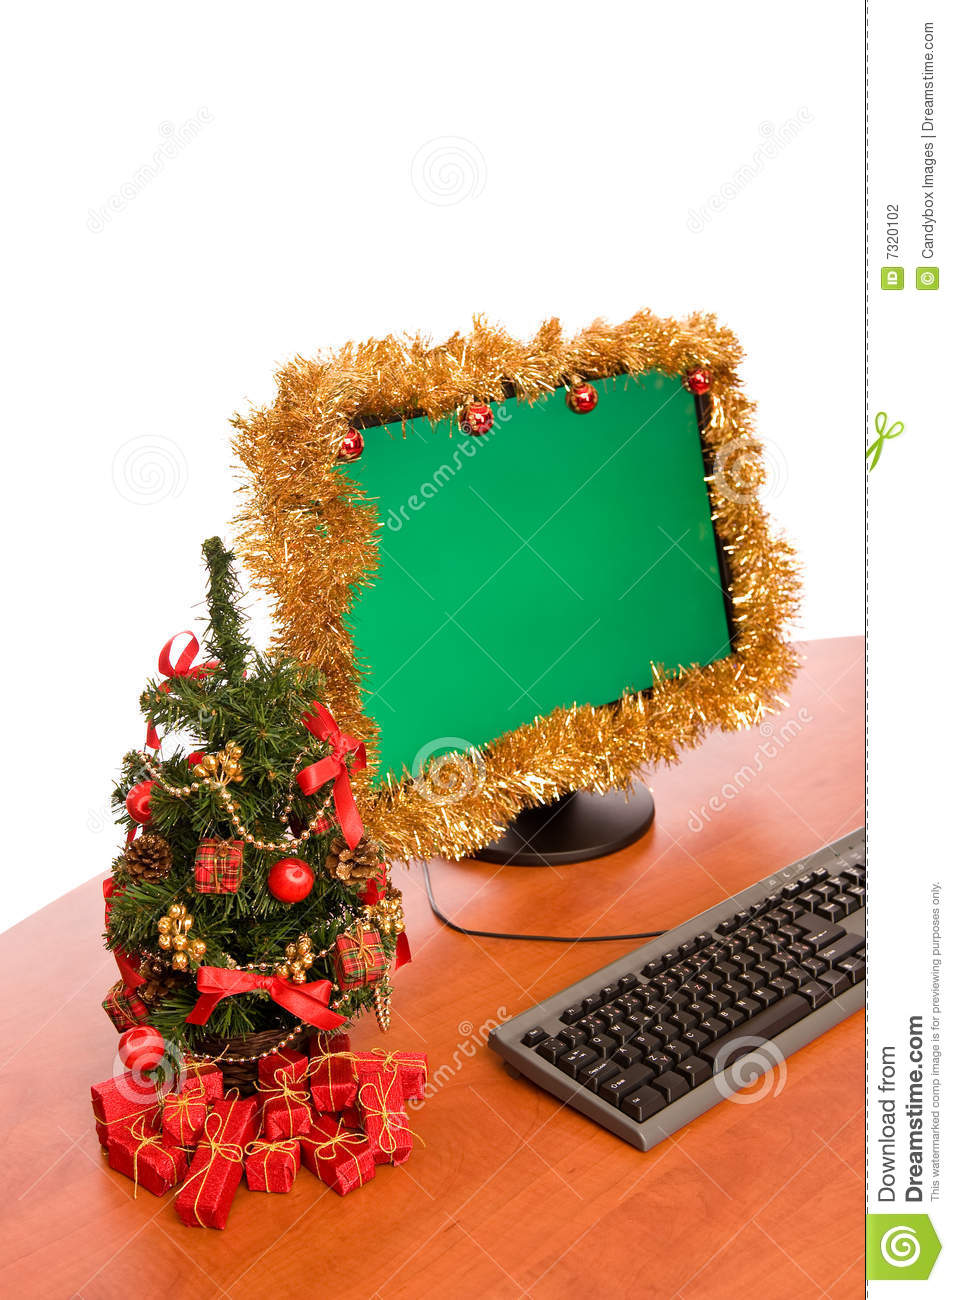 Christmas Decorated Office Desk Stock Photography Image